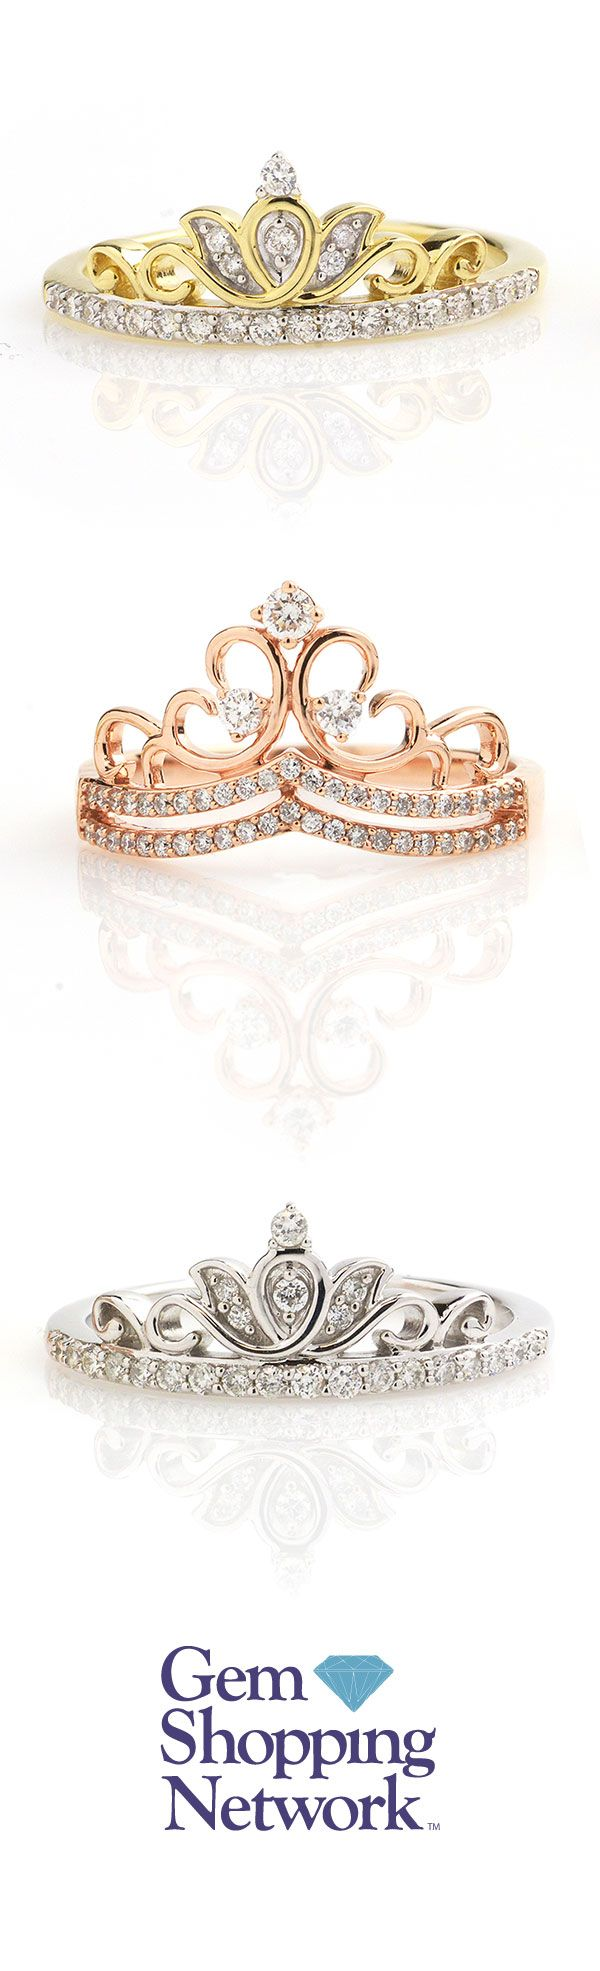 Tiara diamond ring in yellow gold, rose gold, and white gold. Give yourself the royal treatment! Gem Shopping Network